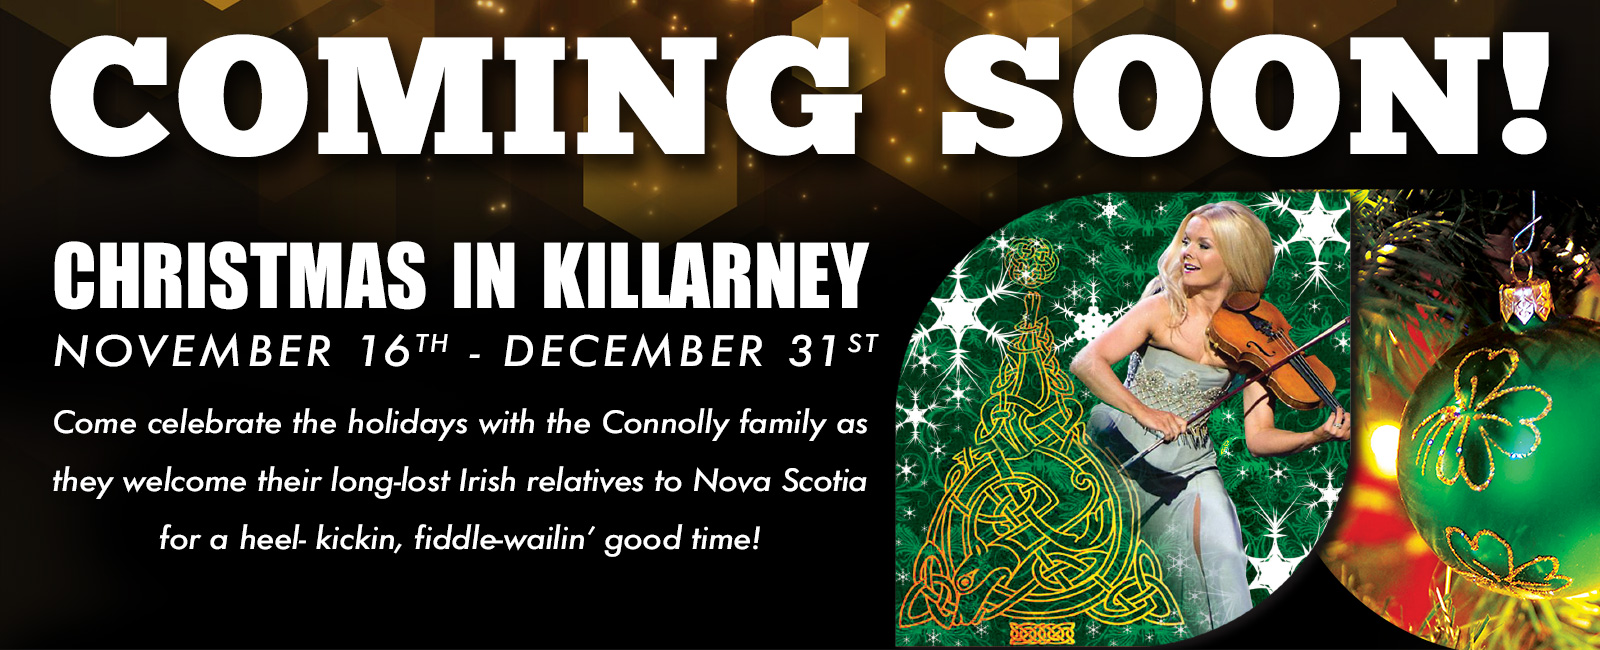 christmas-in-killarney-gsdt